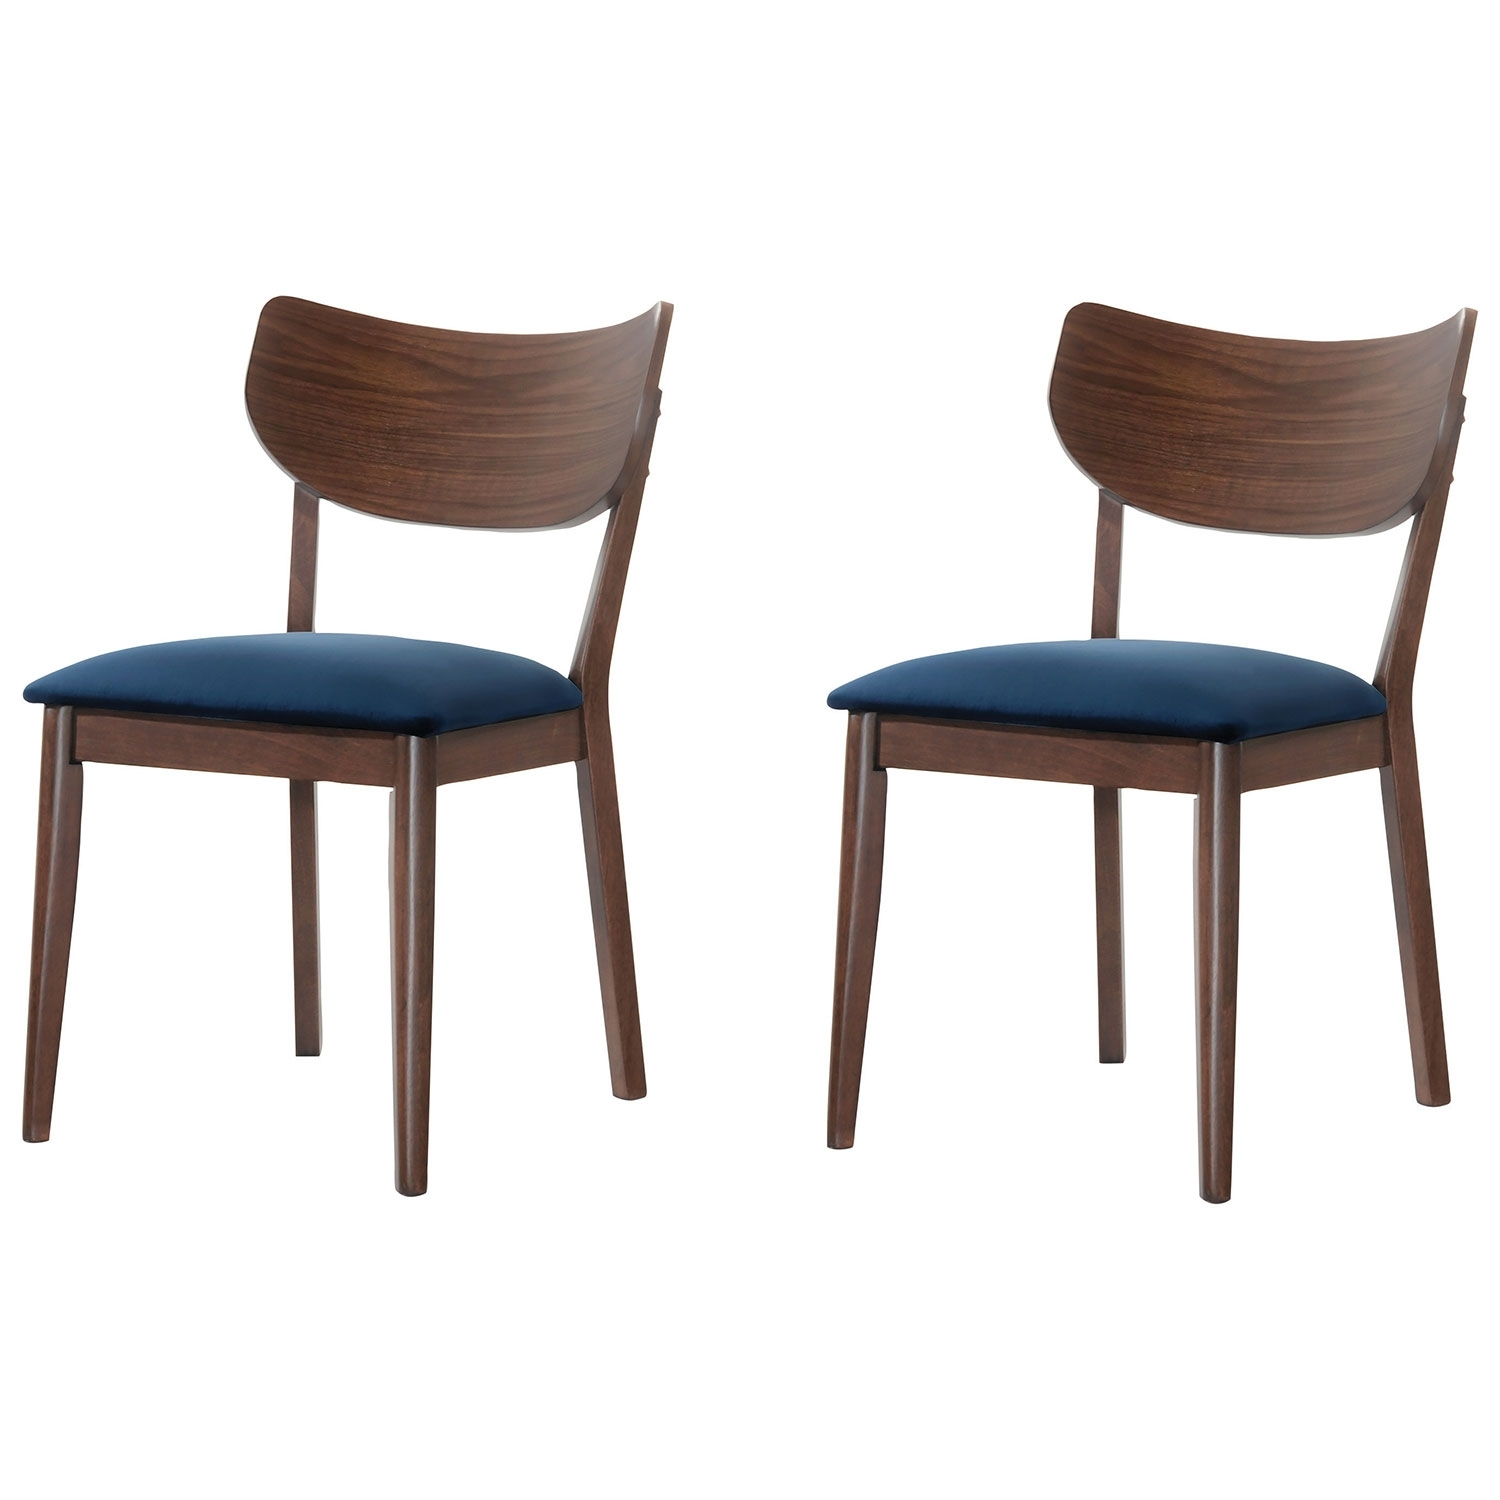 Recent Dining Chairs: Leather, Modern, Contemporary & More – Best Buy Canada Within Cole Ii Black Side Chairs (#17 of 20)